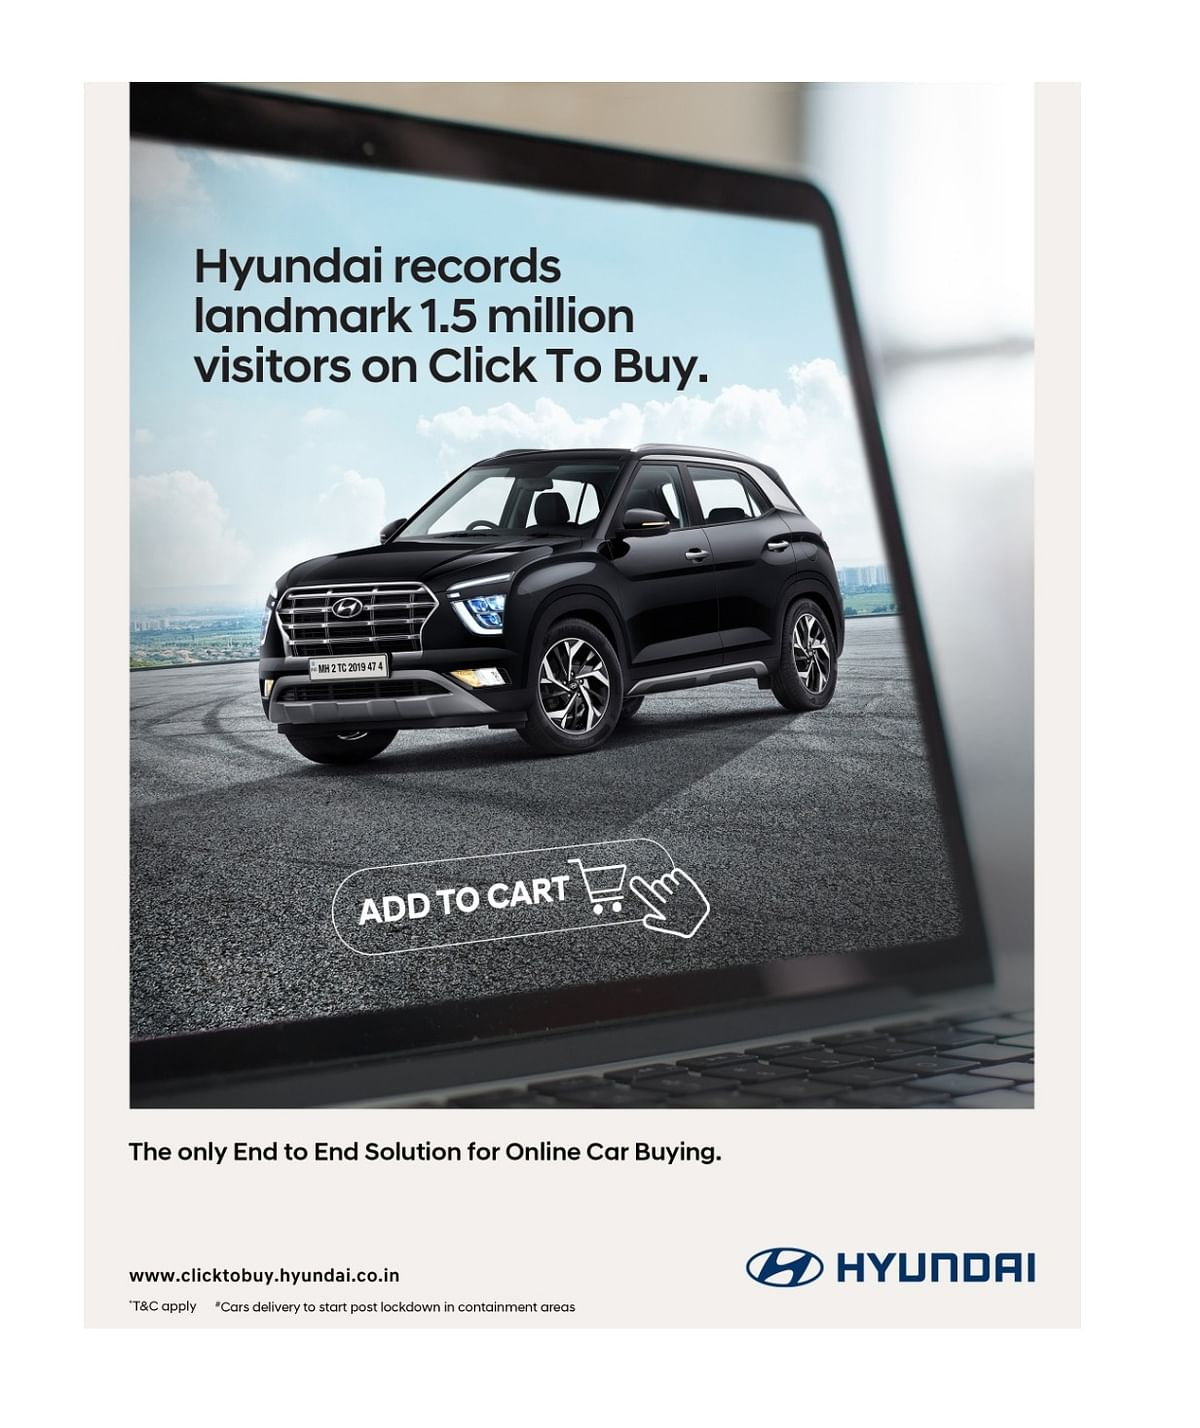 1.5 million Indians have 'Clicked To Buy' a Hyundai!